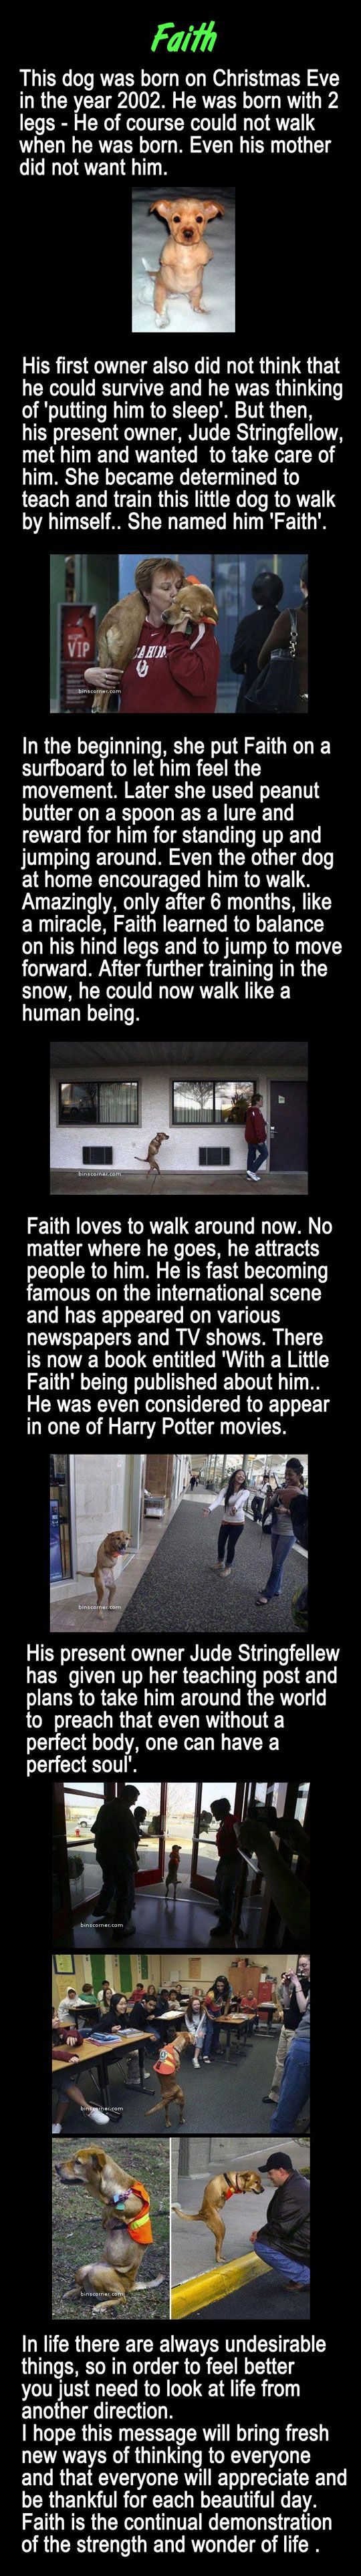 Fabulous! The Power of Faith